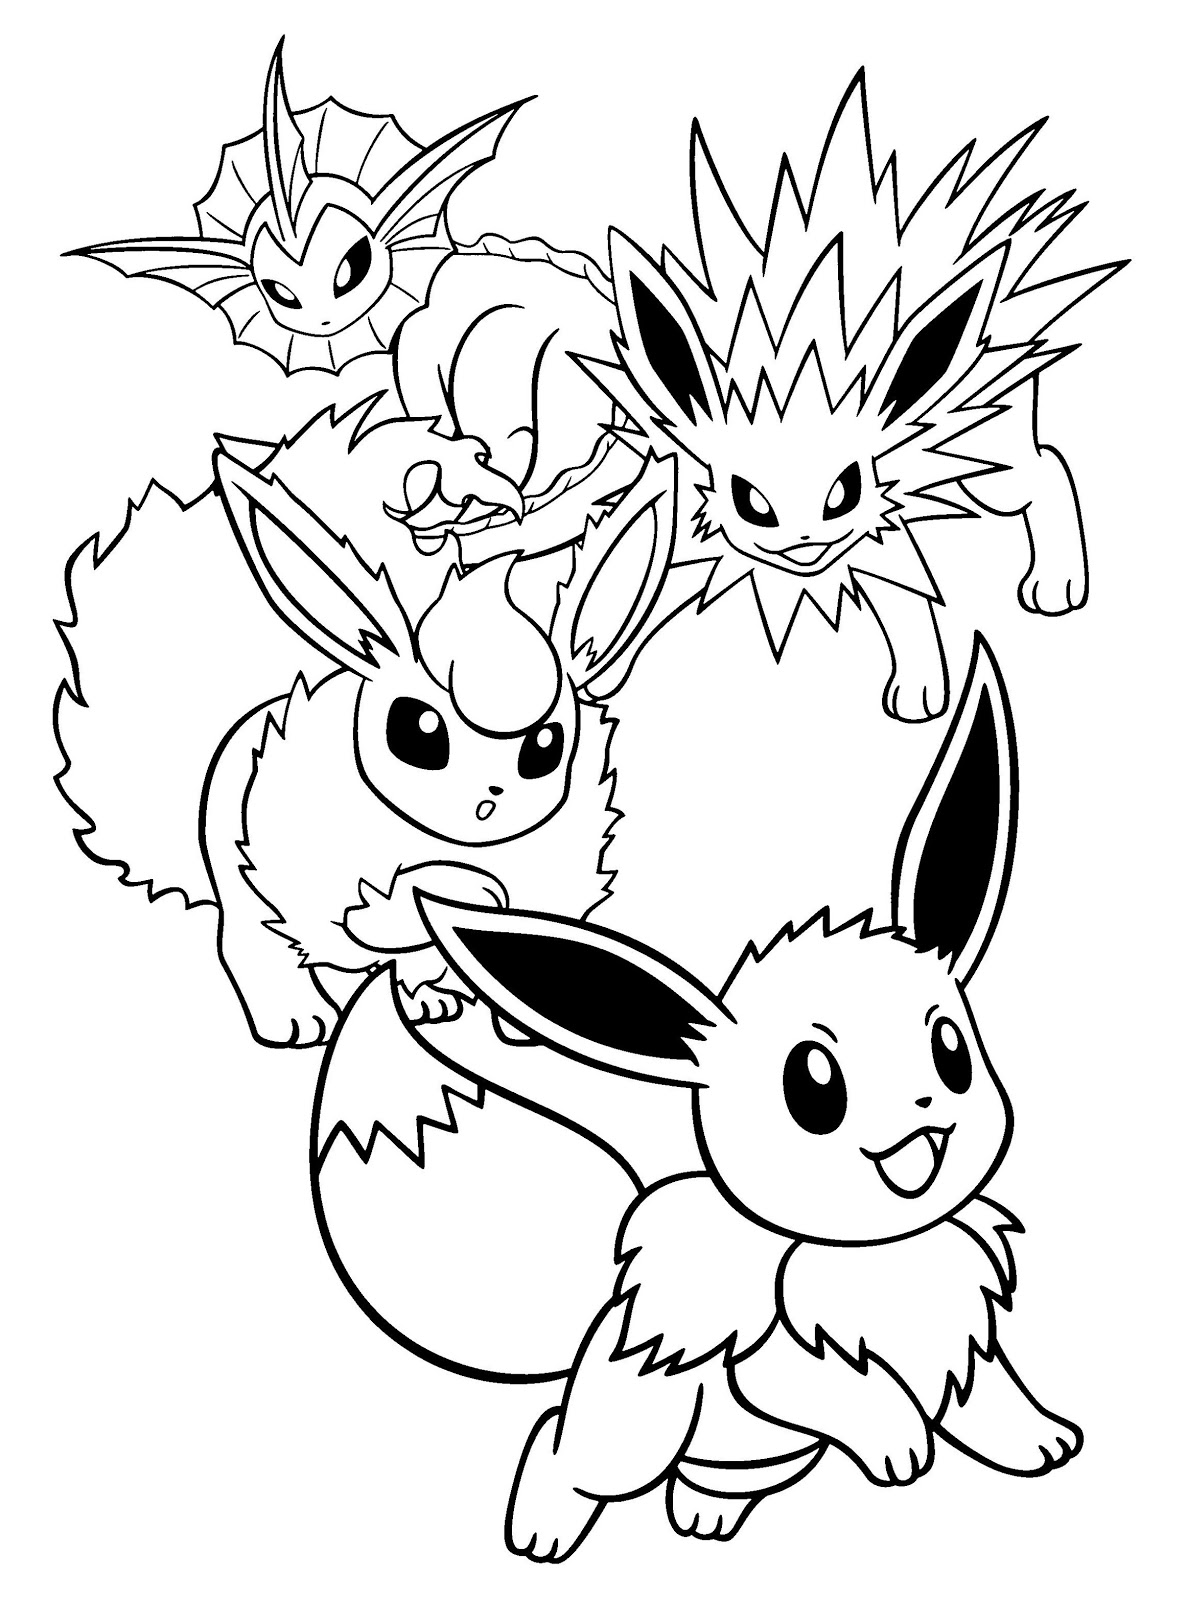 Eevee Coloring Pages Printable - Free Pokemon Coloring Pages